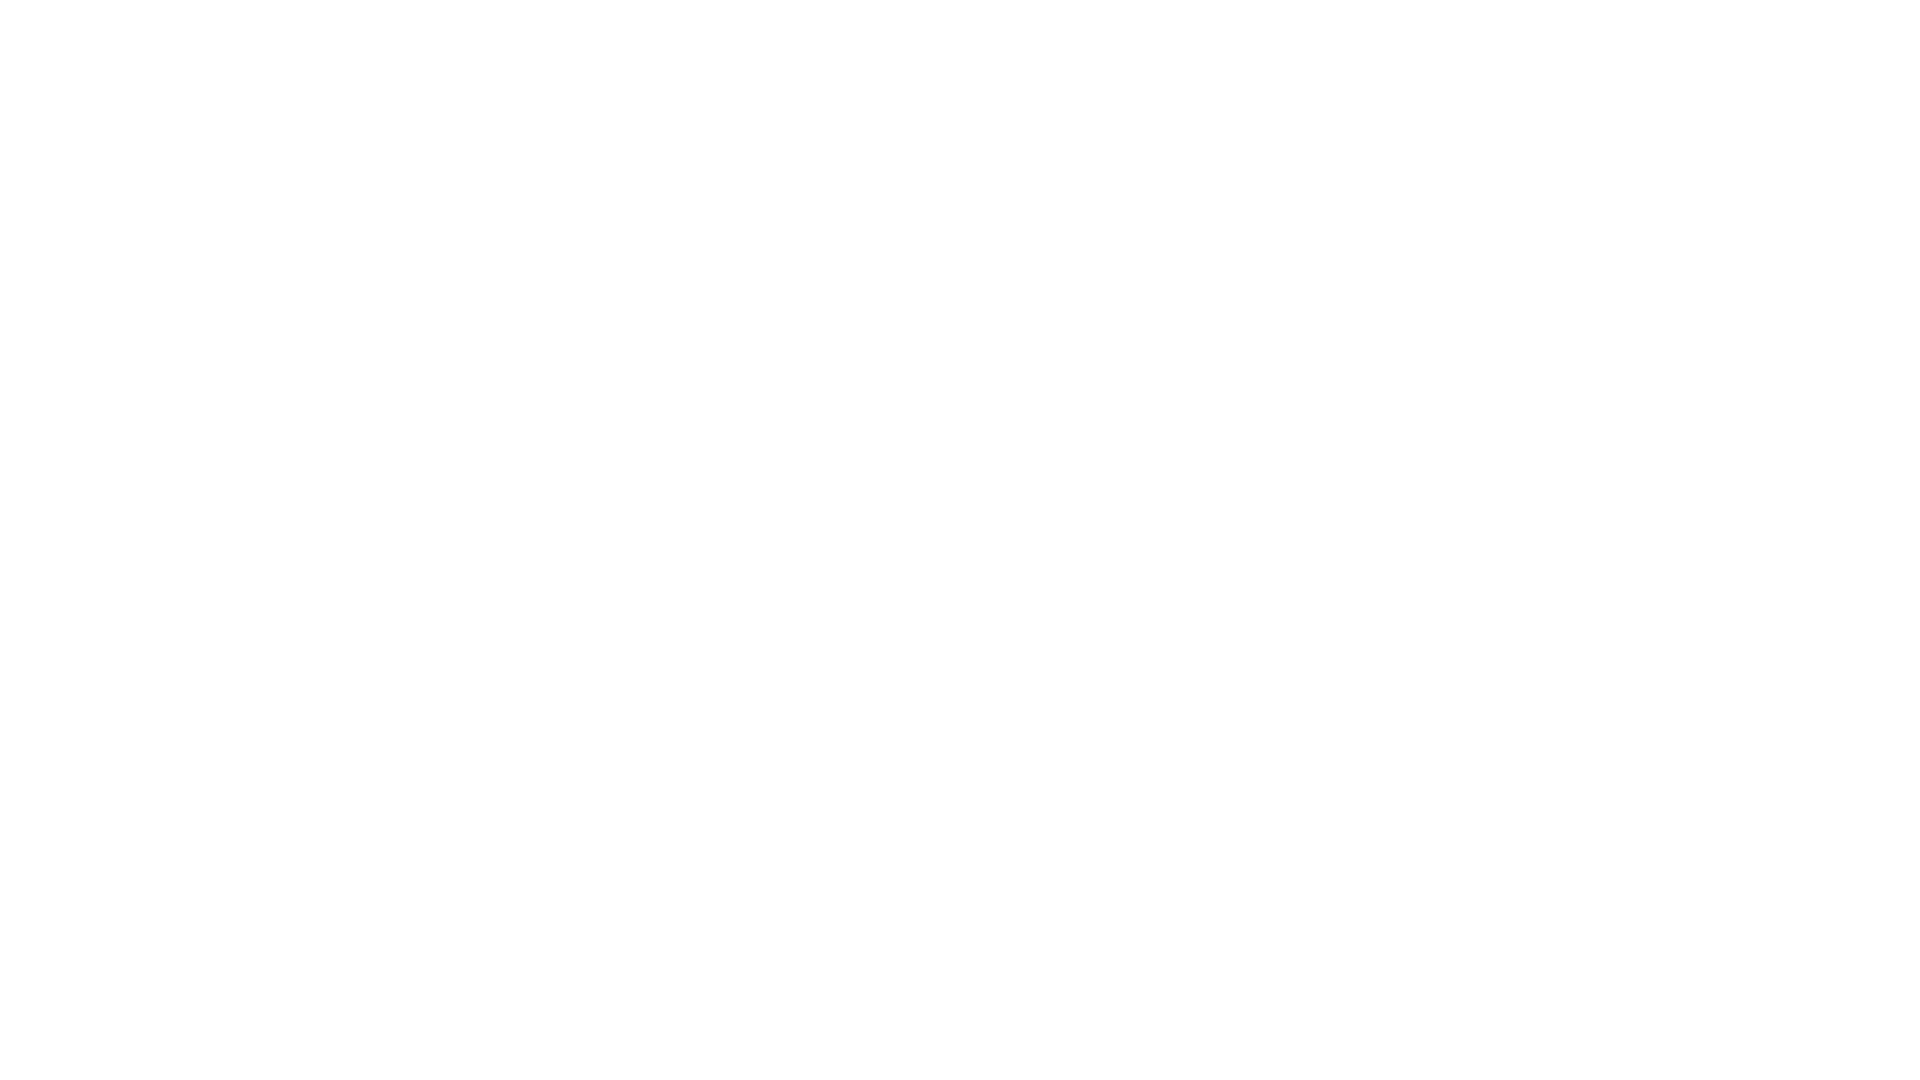 Alex Body & Stage AB